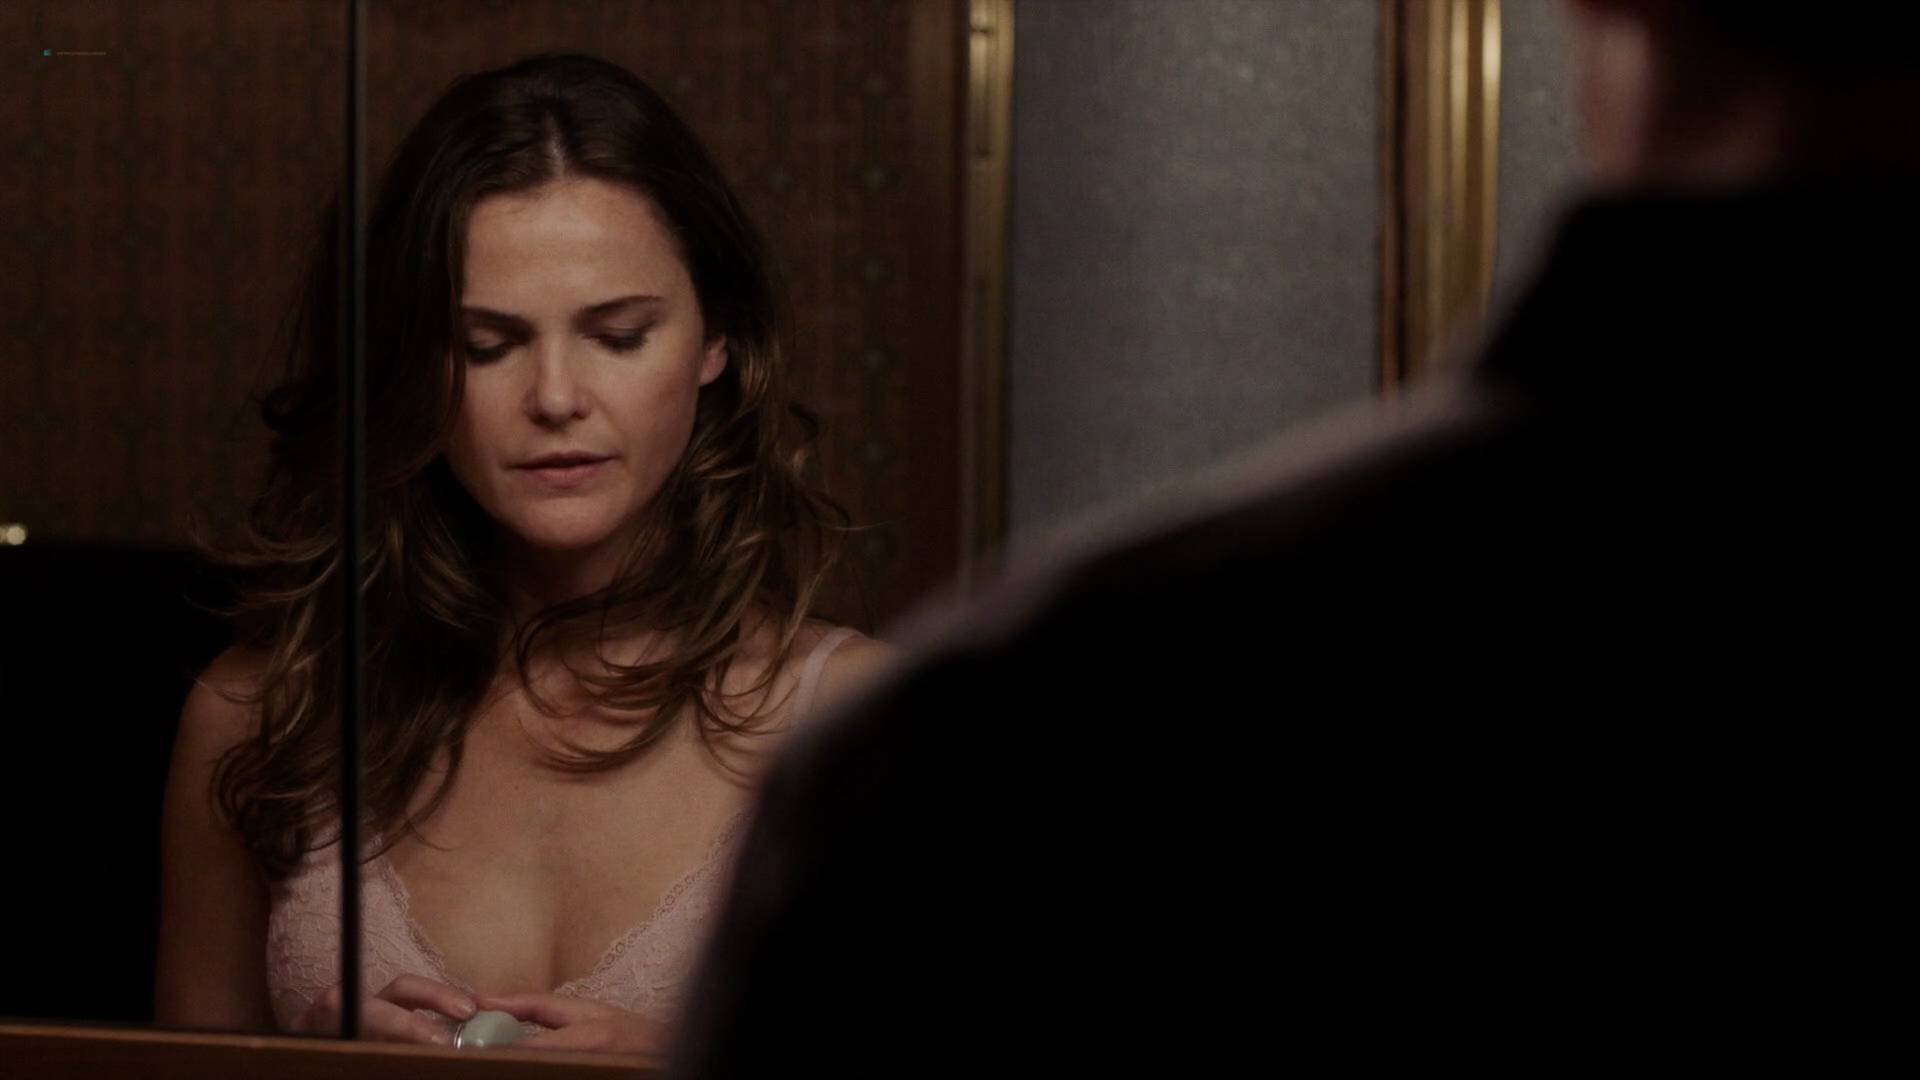 Keri Russell nude butt in the shower -The Americans (2017) s5e2 HD 1080p (6)